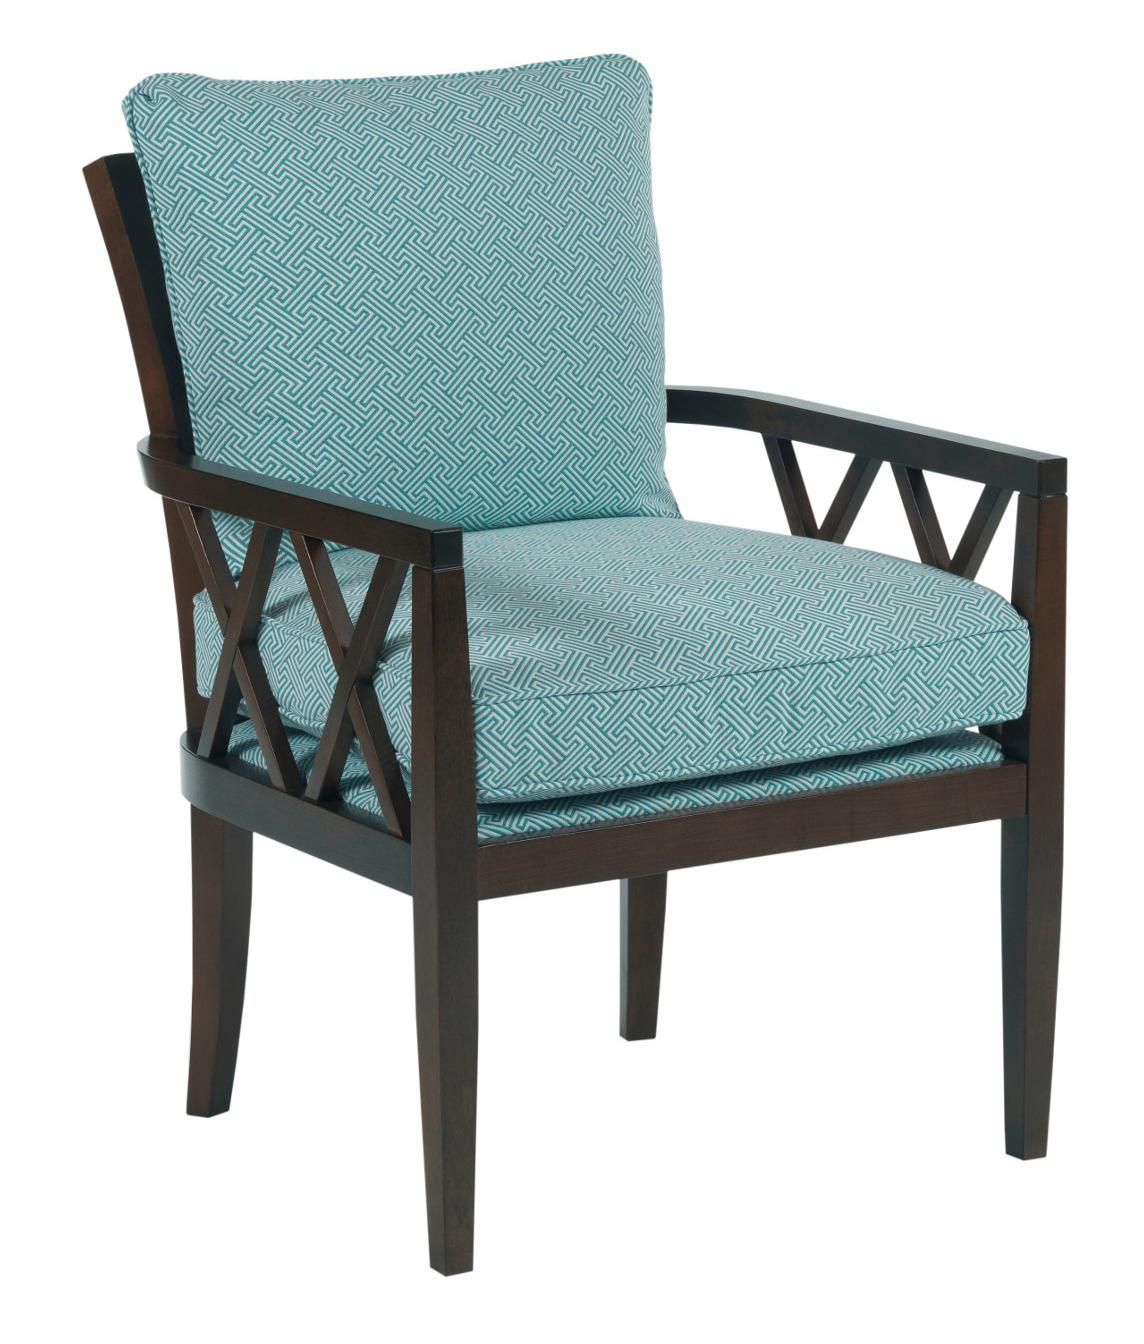 loveseat or sofa difference kincaid furniture reviews accent chairs veranda chair with exposed ...